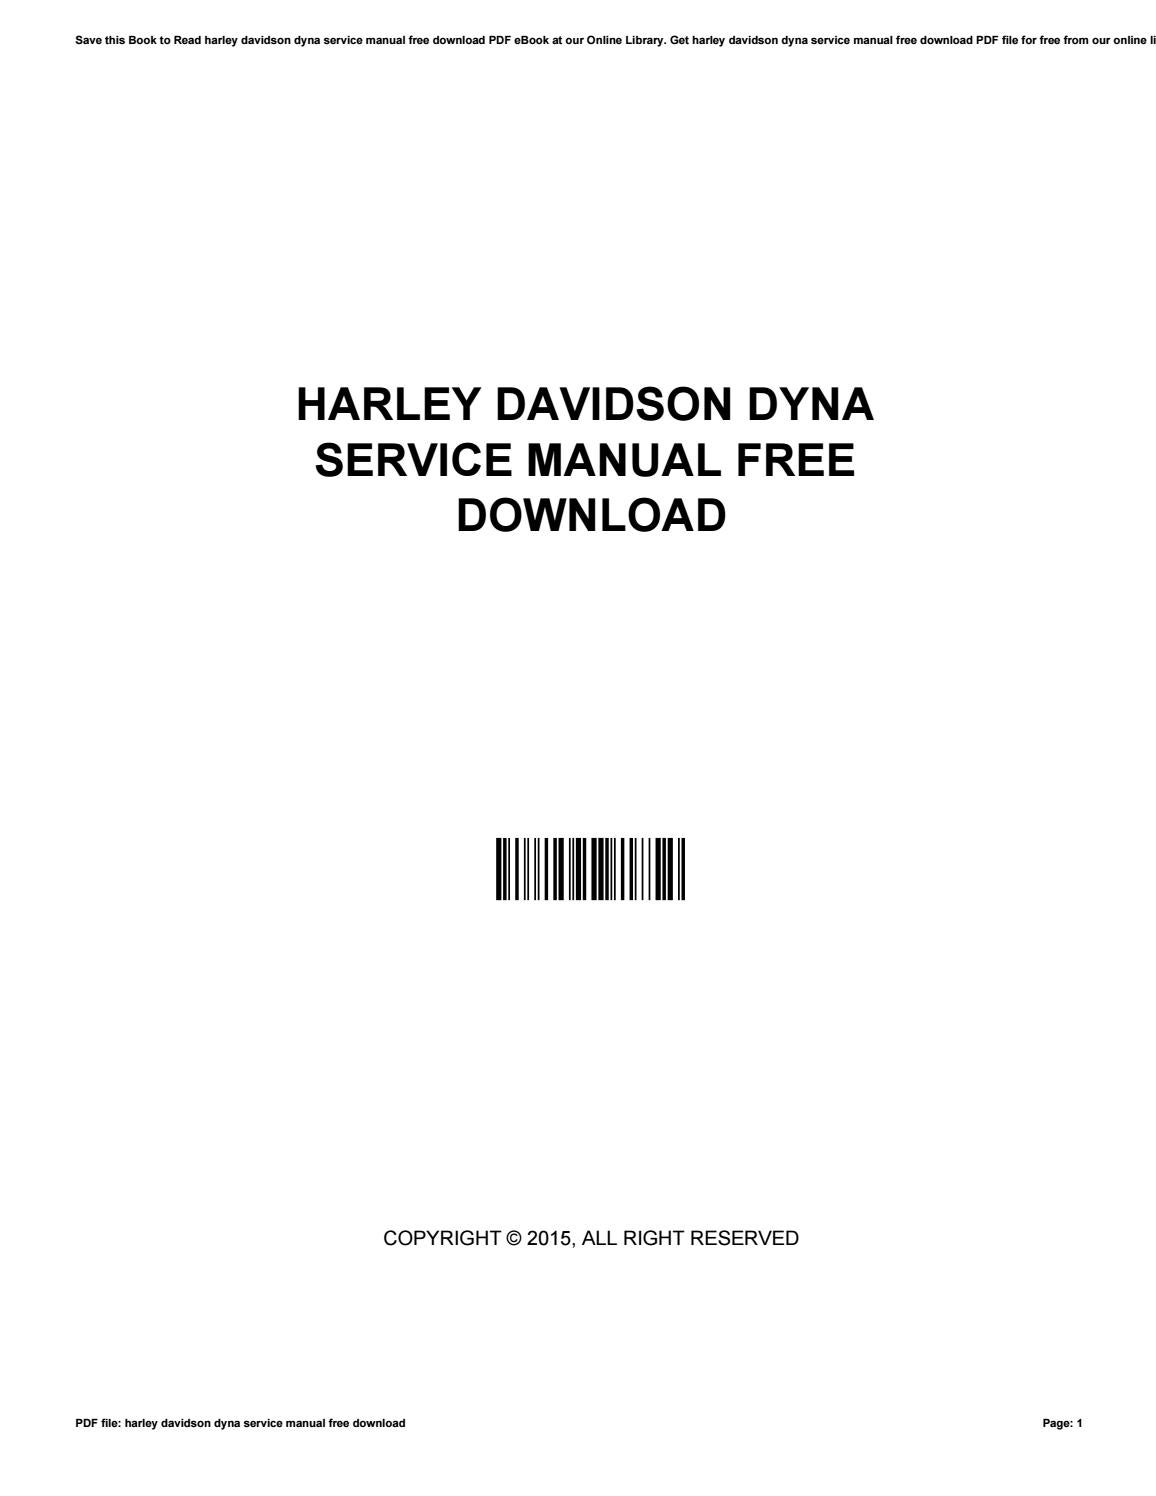 Harley davidson dyna service manual free download by ChadSinclair3280 -  issuu